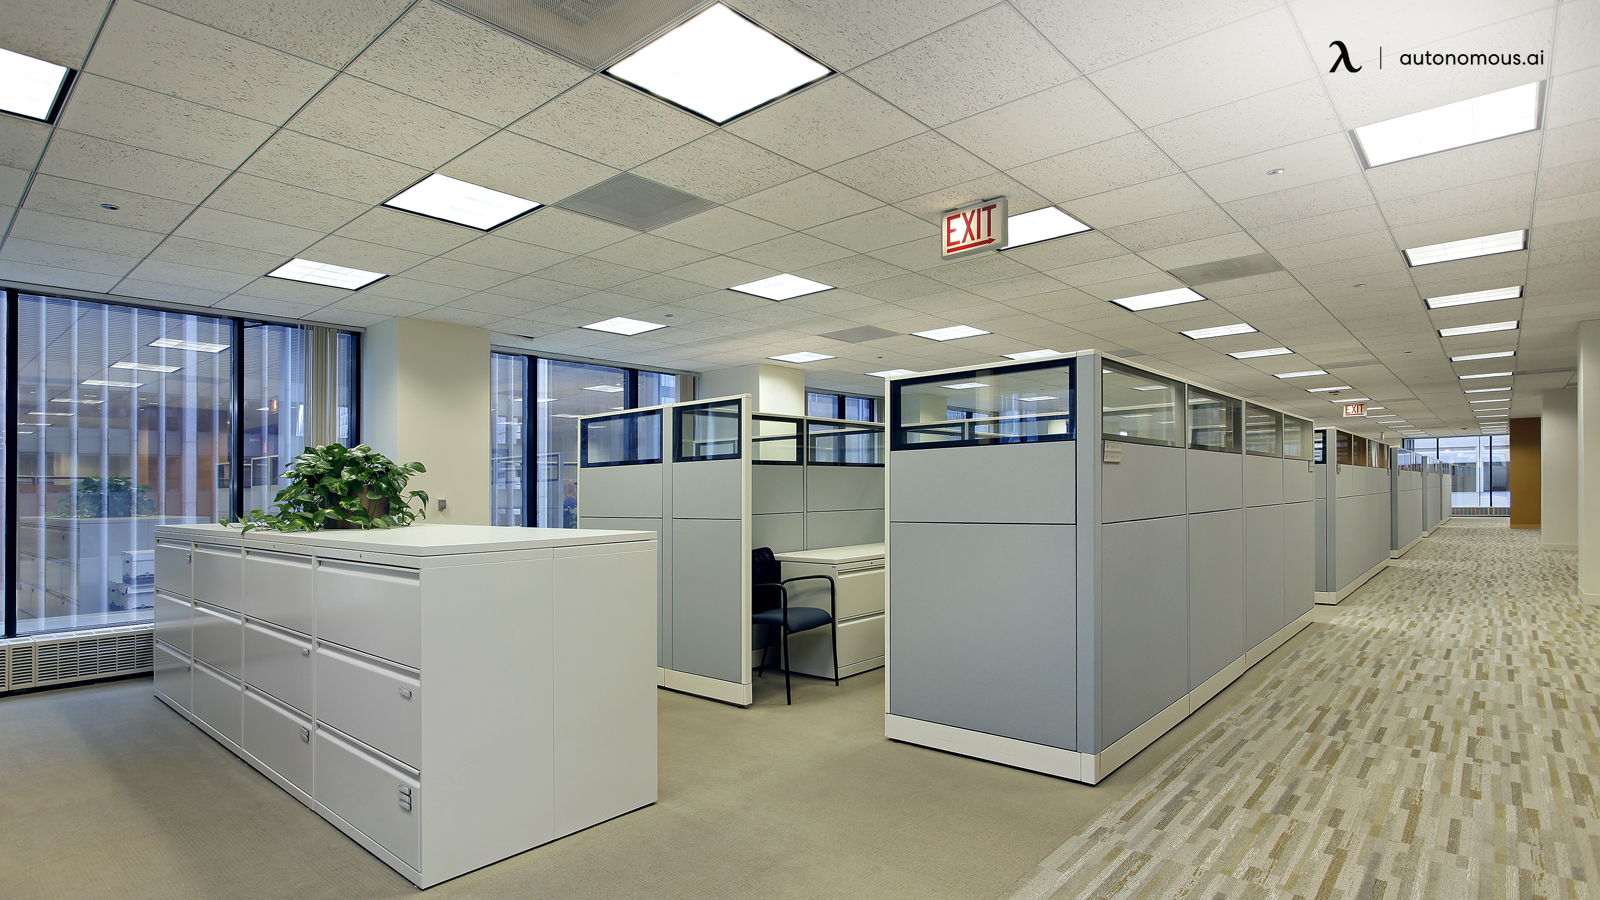 Furnishing Office With Cubicles and Filing Cabinets